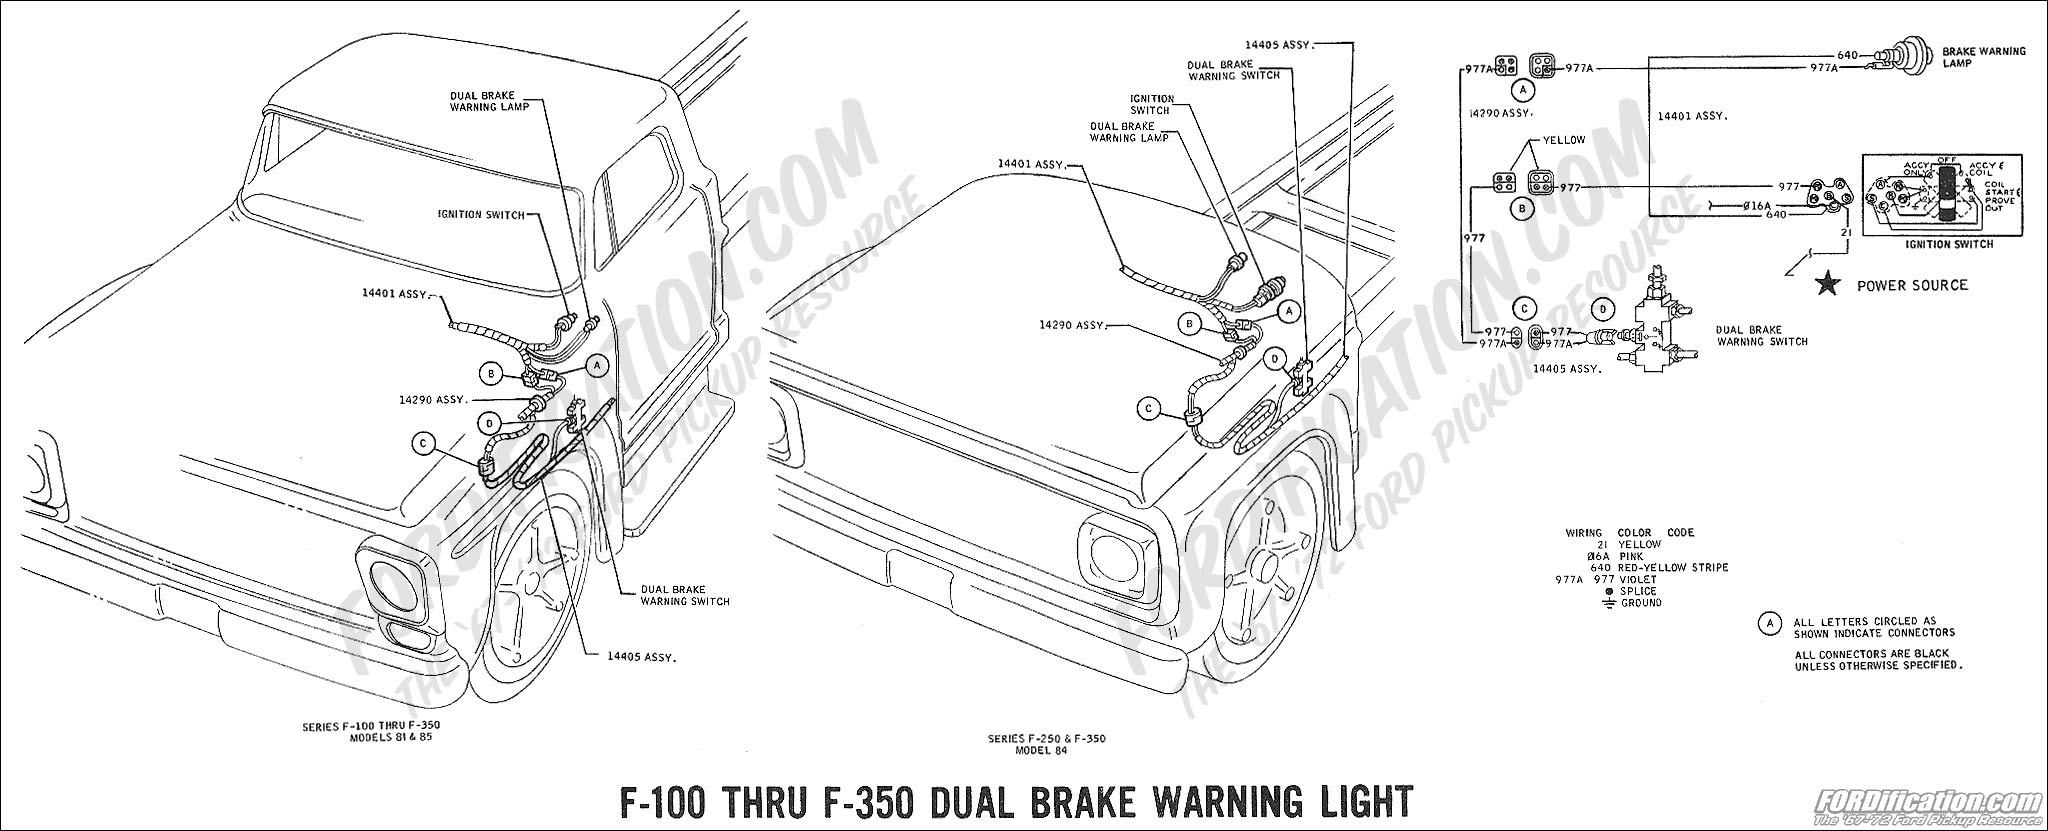 Ford Truck Technical Drawings And Schematics Section H Wiring 1973 Vw Beetle Tail Light Diagram Taillight 1969 F 100 Thru 350 Dual Brake Warning